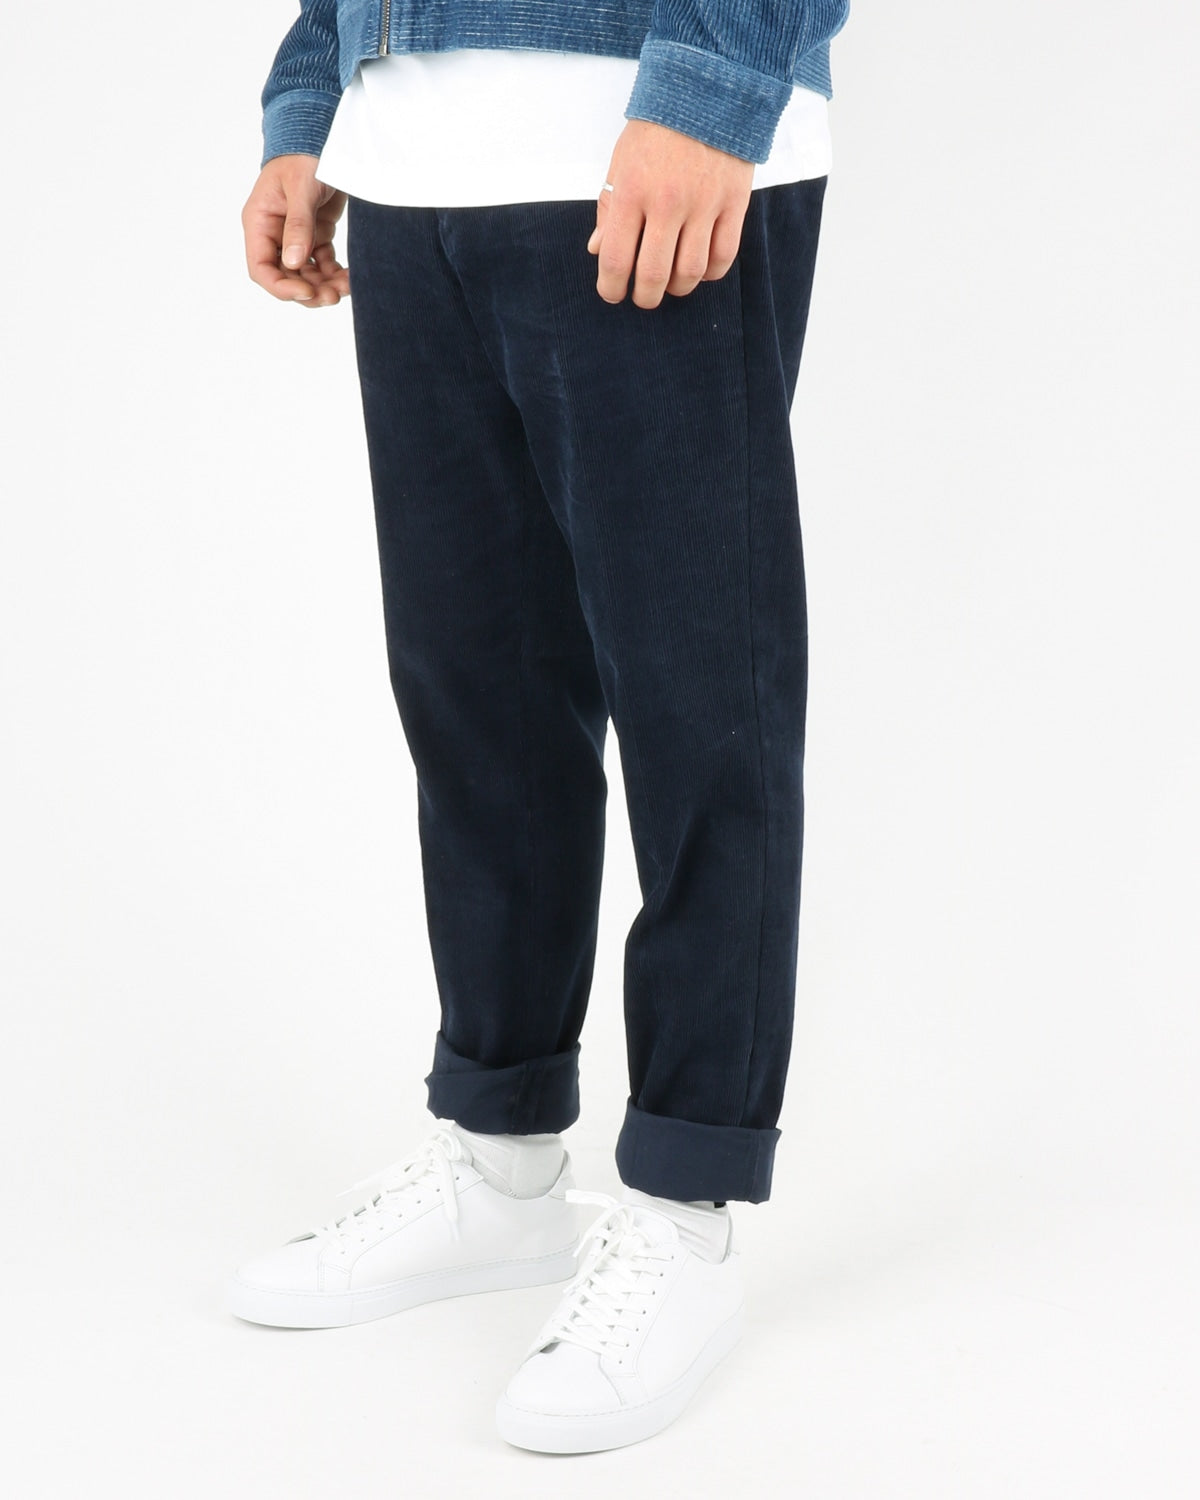 samsoe samsoe_laurent trousers_night sky_1_4